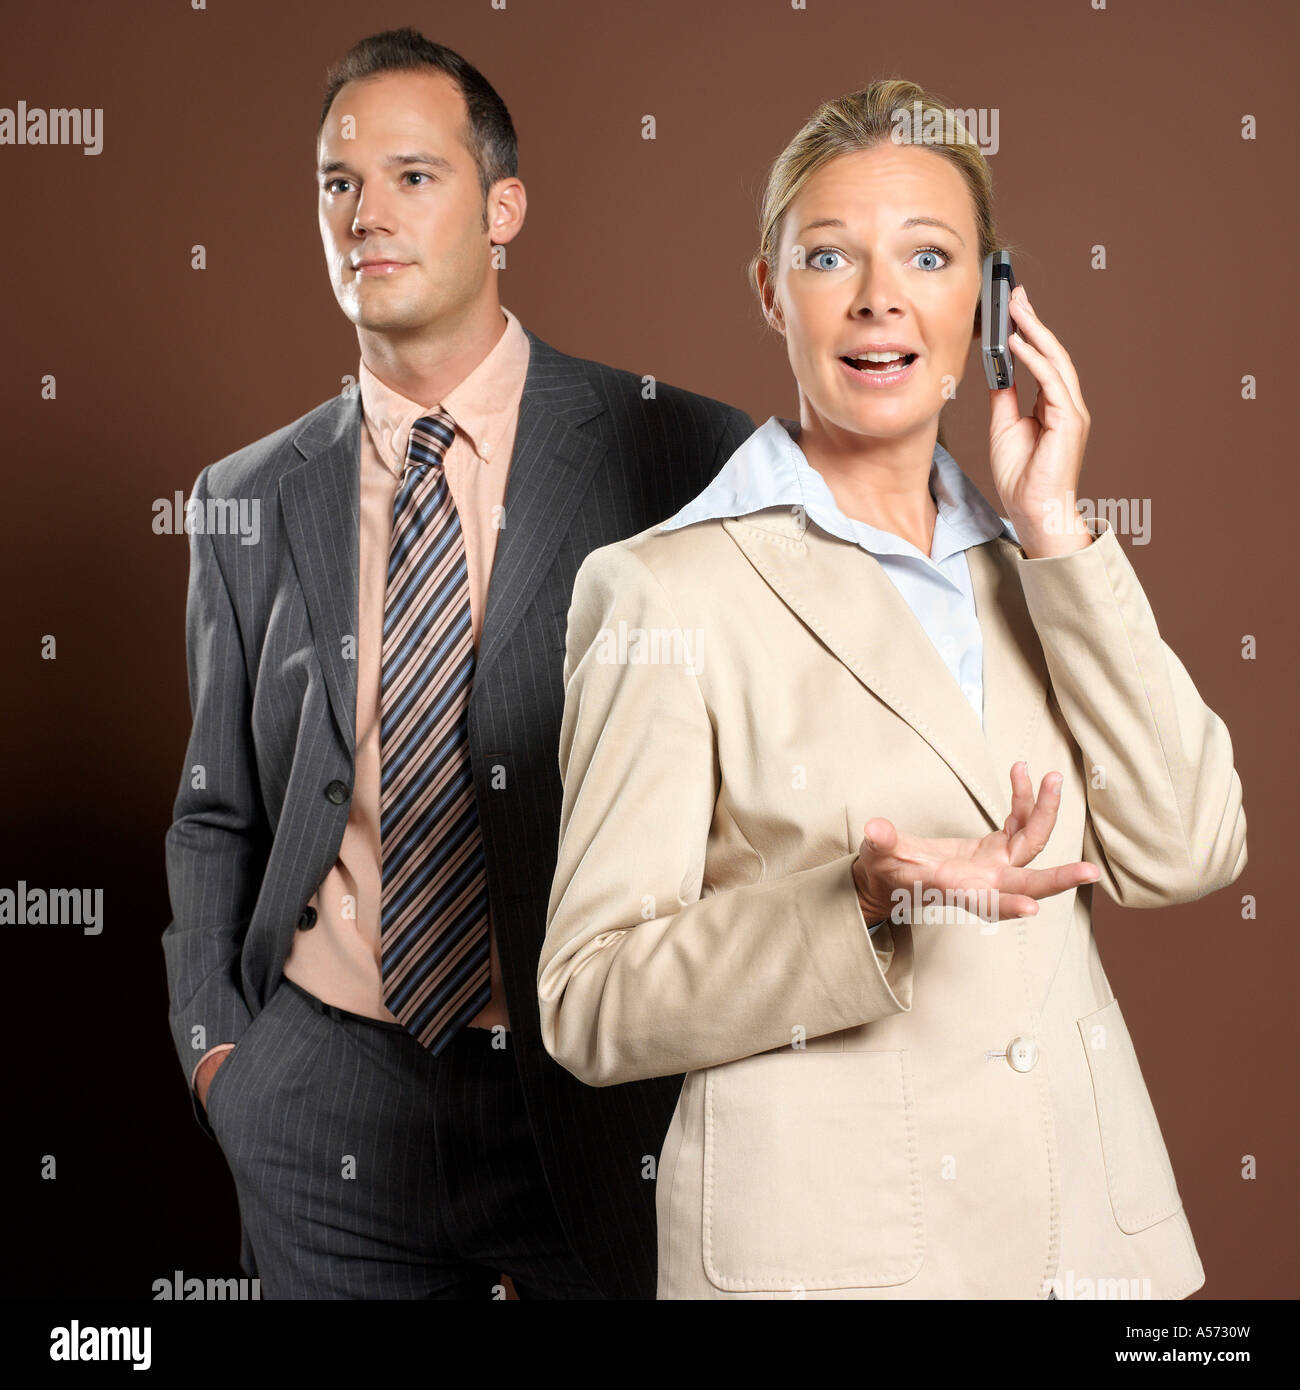 Businessman and businesswoman, woman holding mobile phone - Stock Image